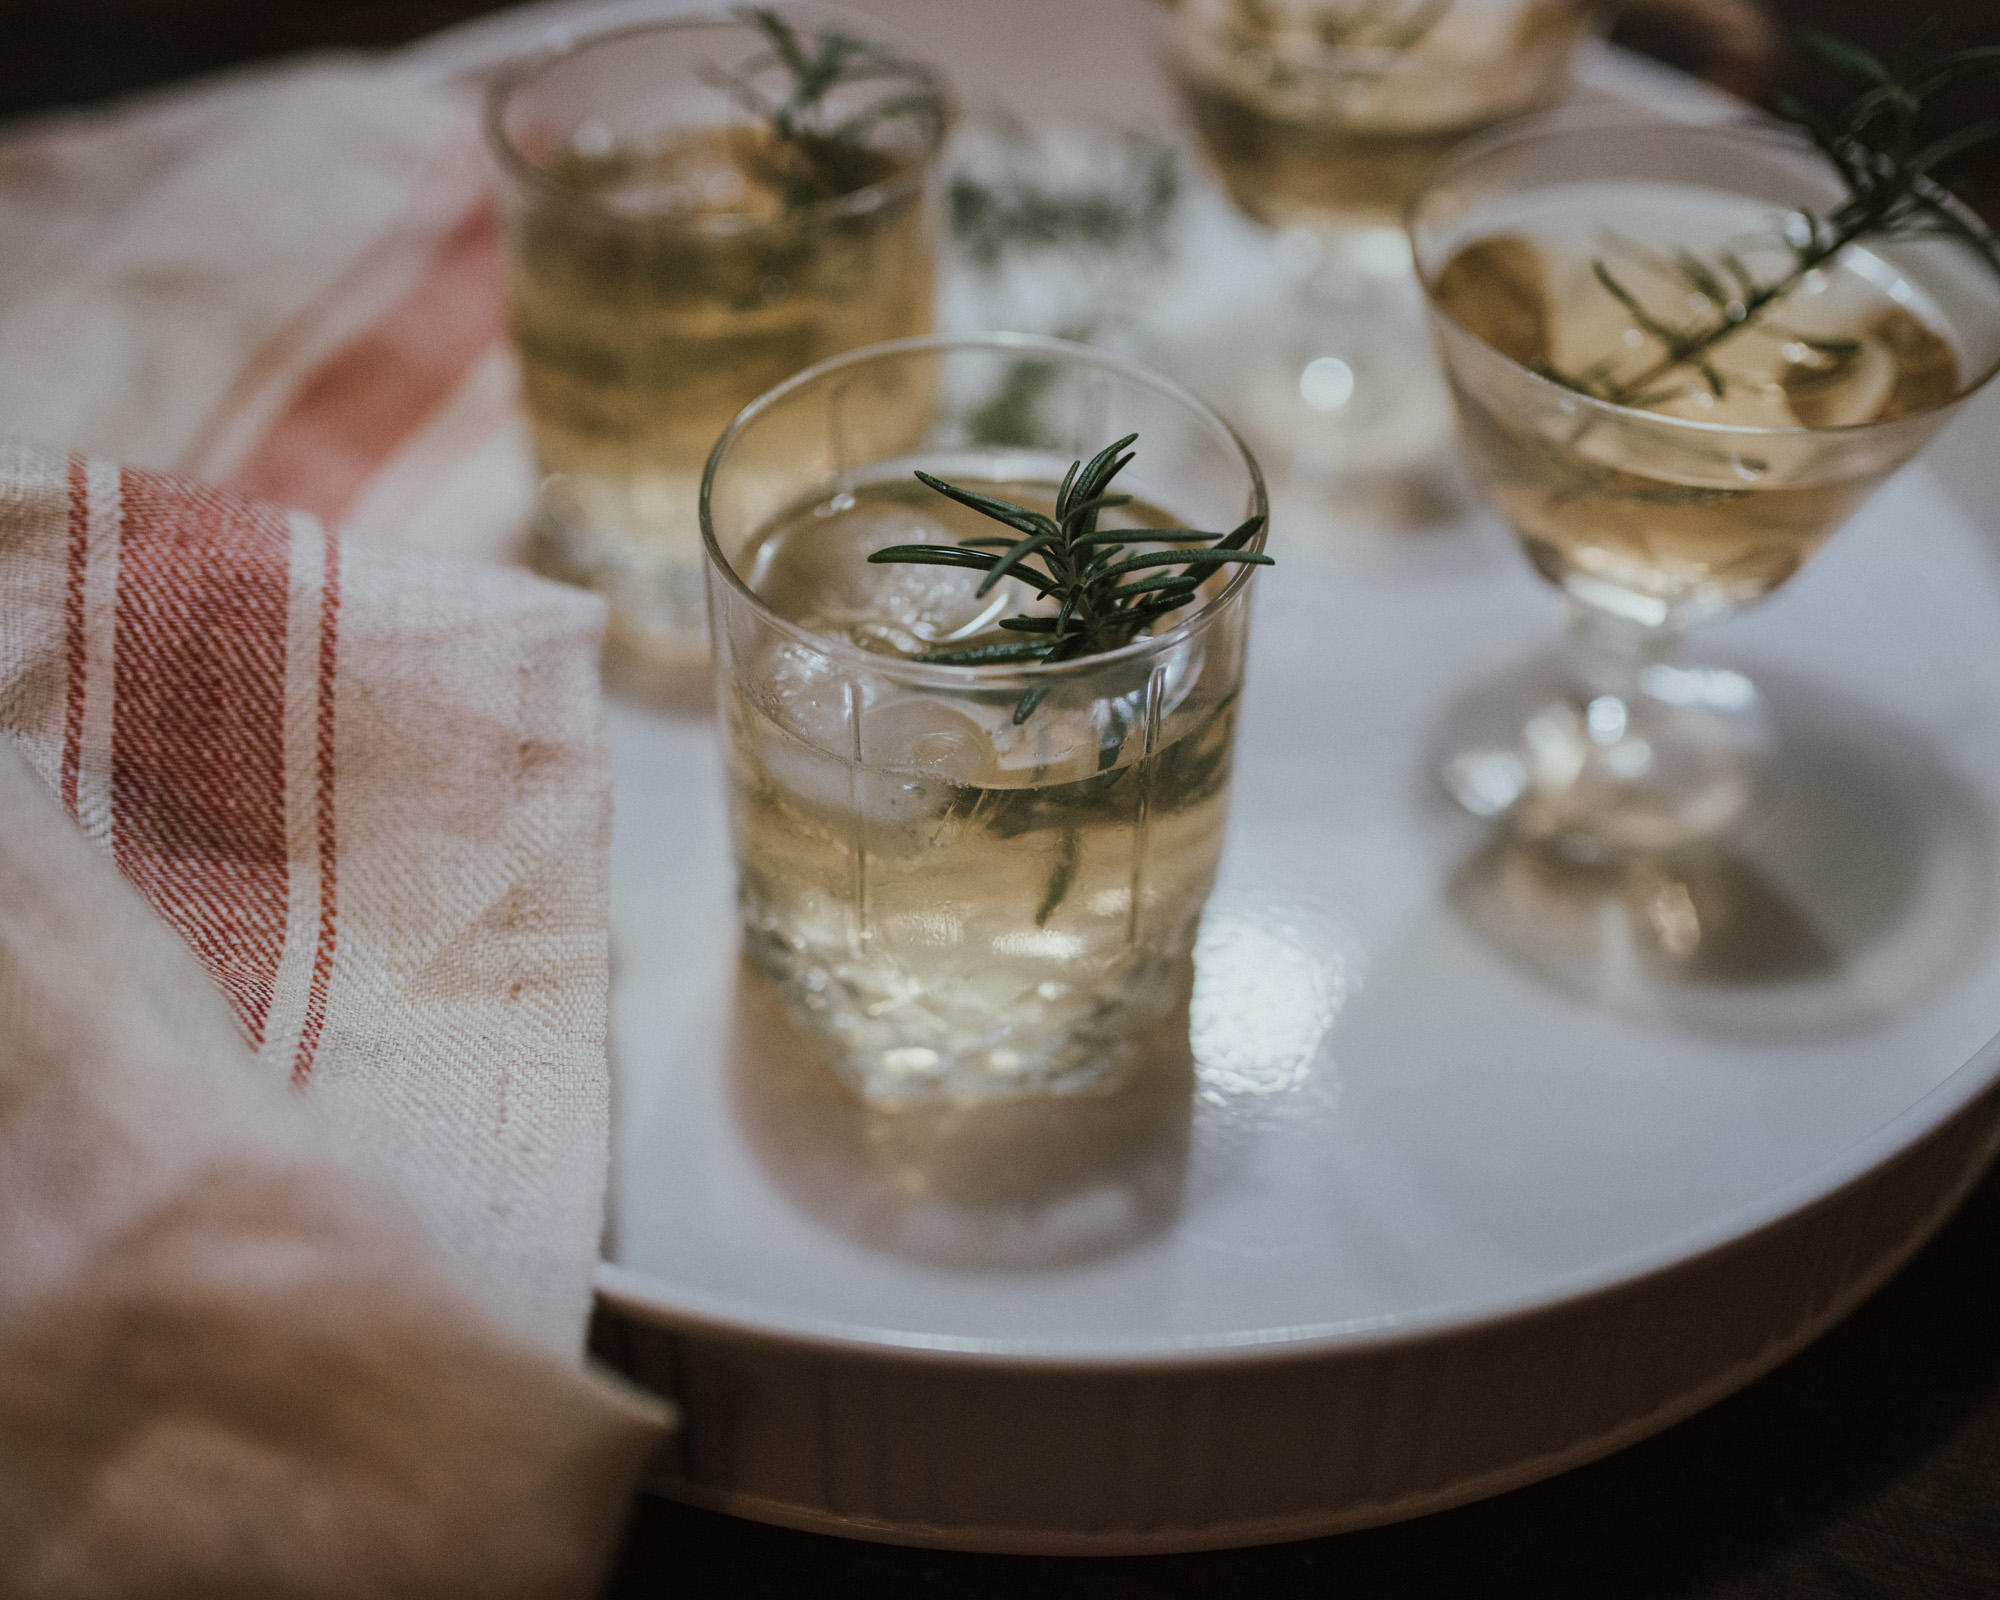 Wild Rosebuds | Cocktails with Dillon's Distillery | Wild Decoeli cocktail made with homemade rosemary simple syrup, Rye, ginger bitters, and topped with Champagne